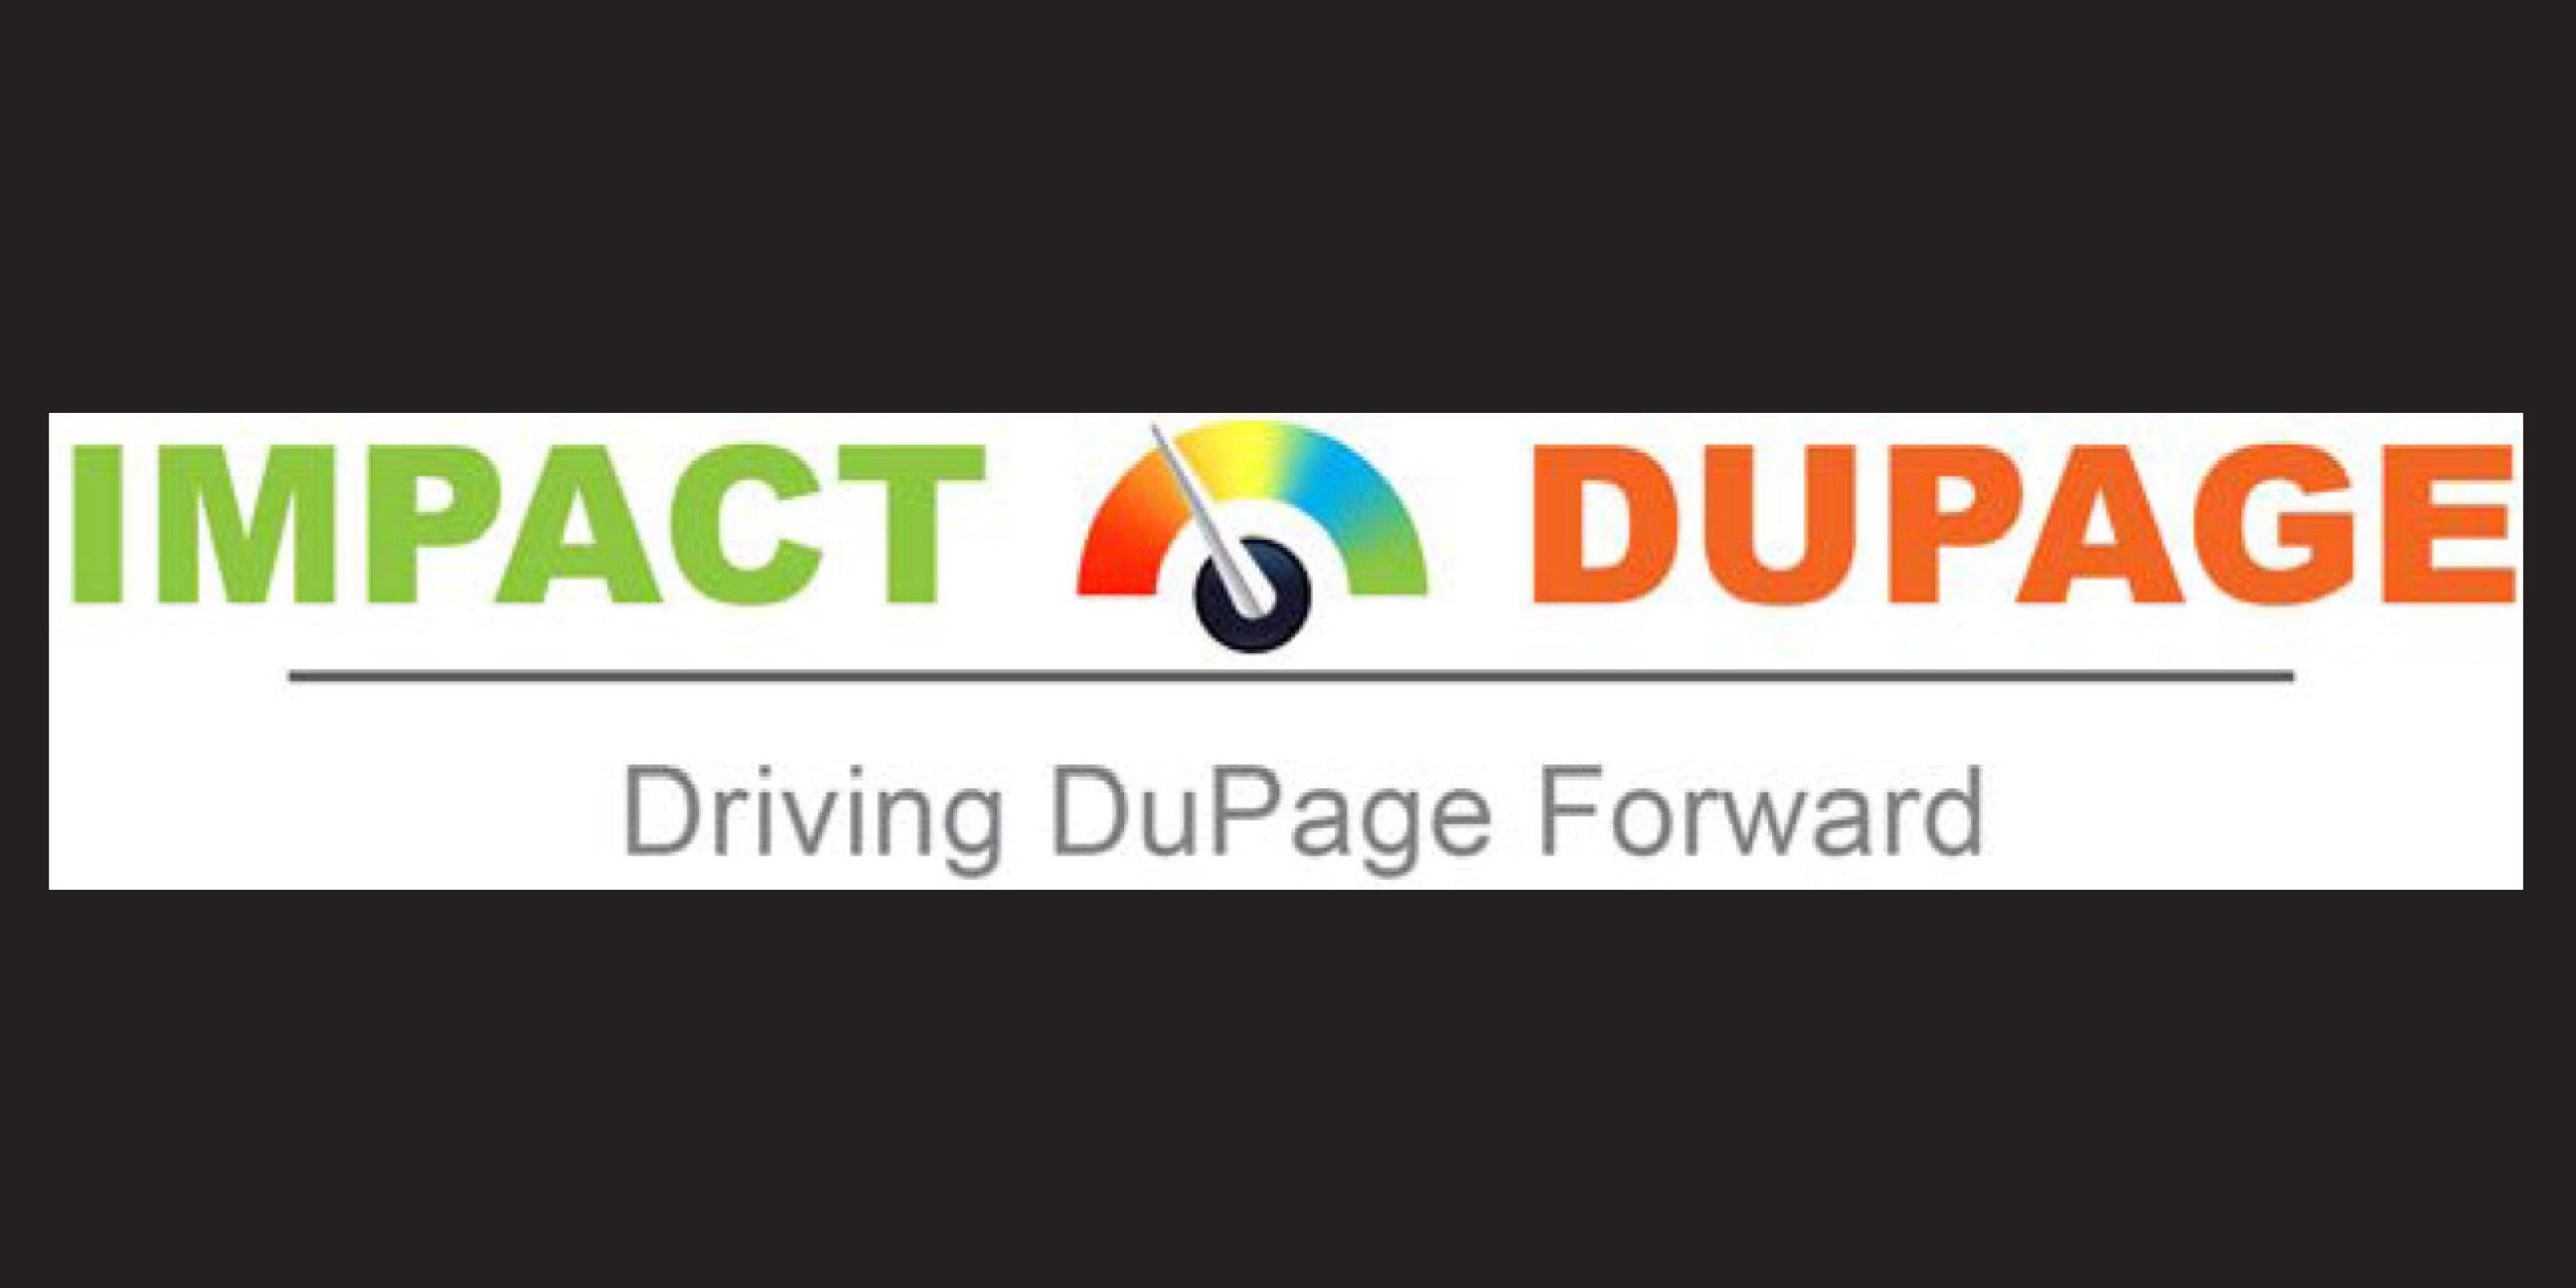 Impact DuPage seeking resident input on survey